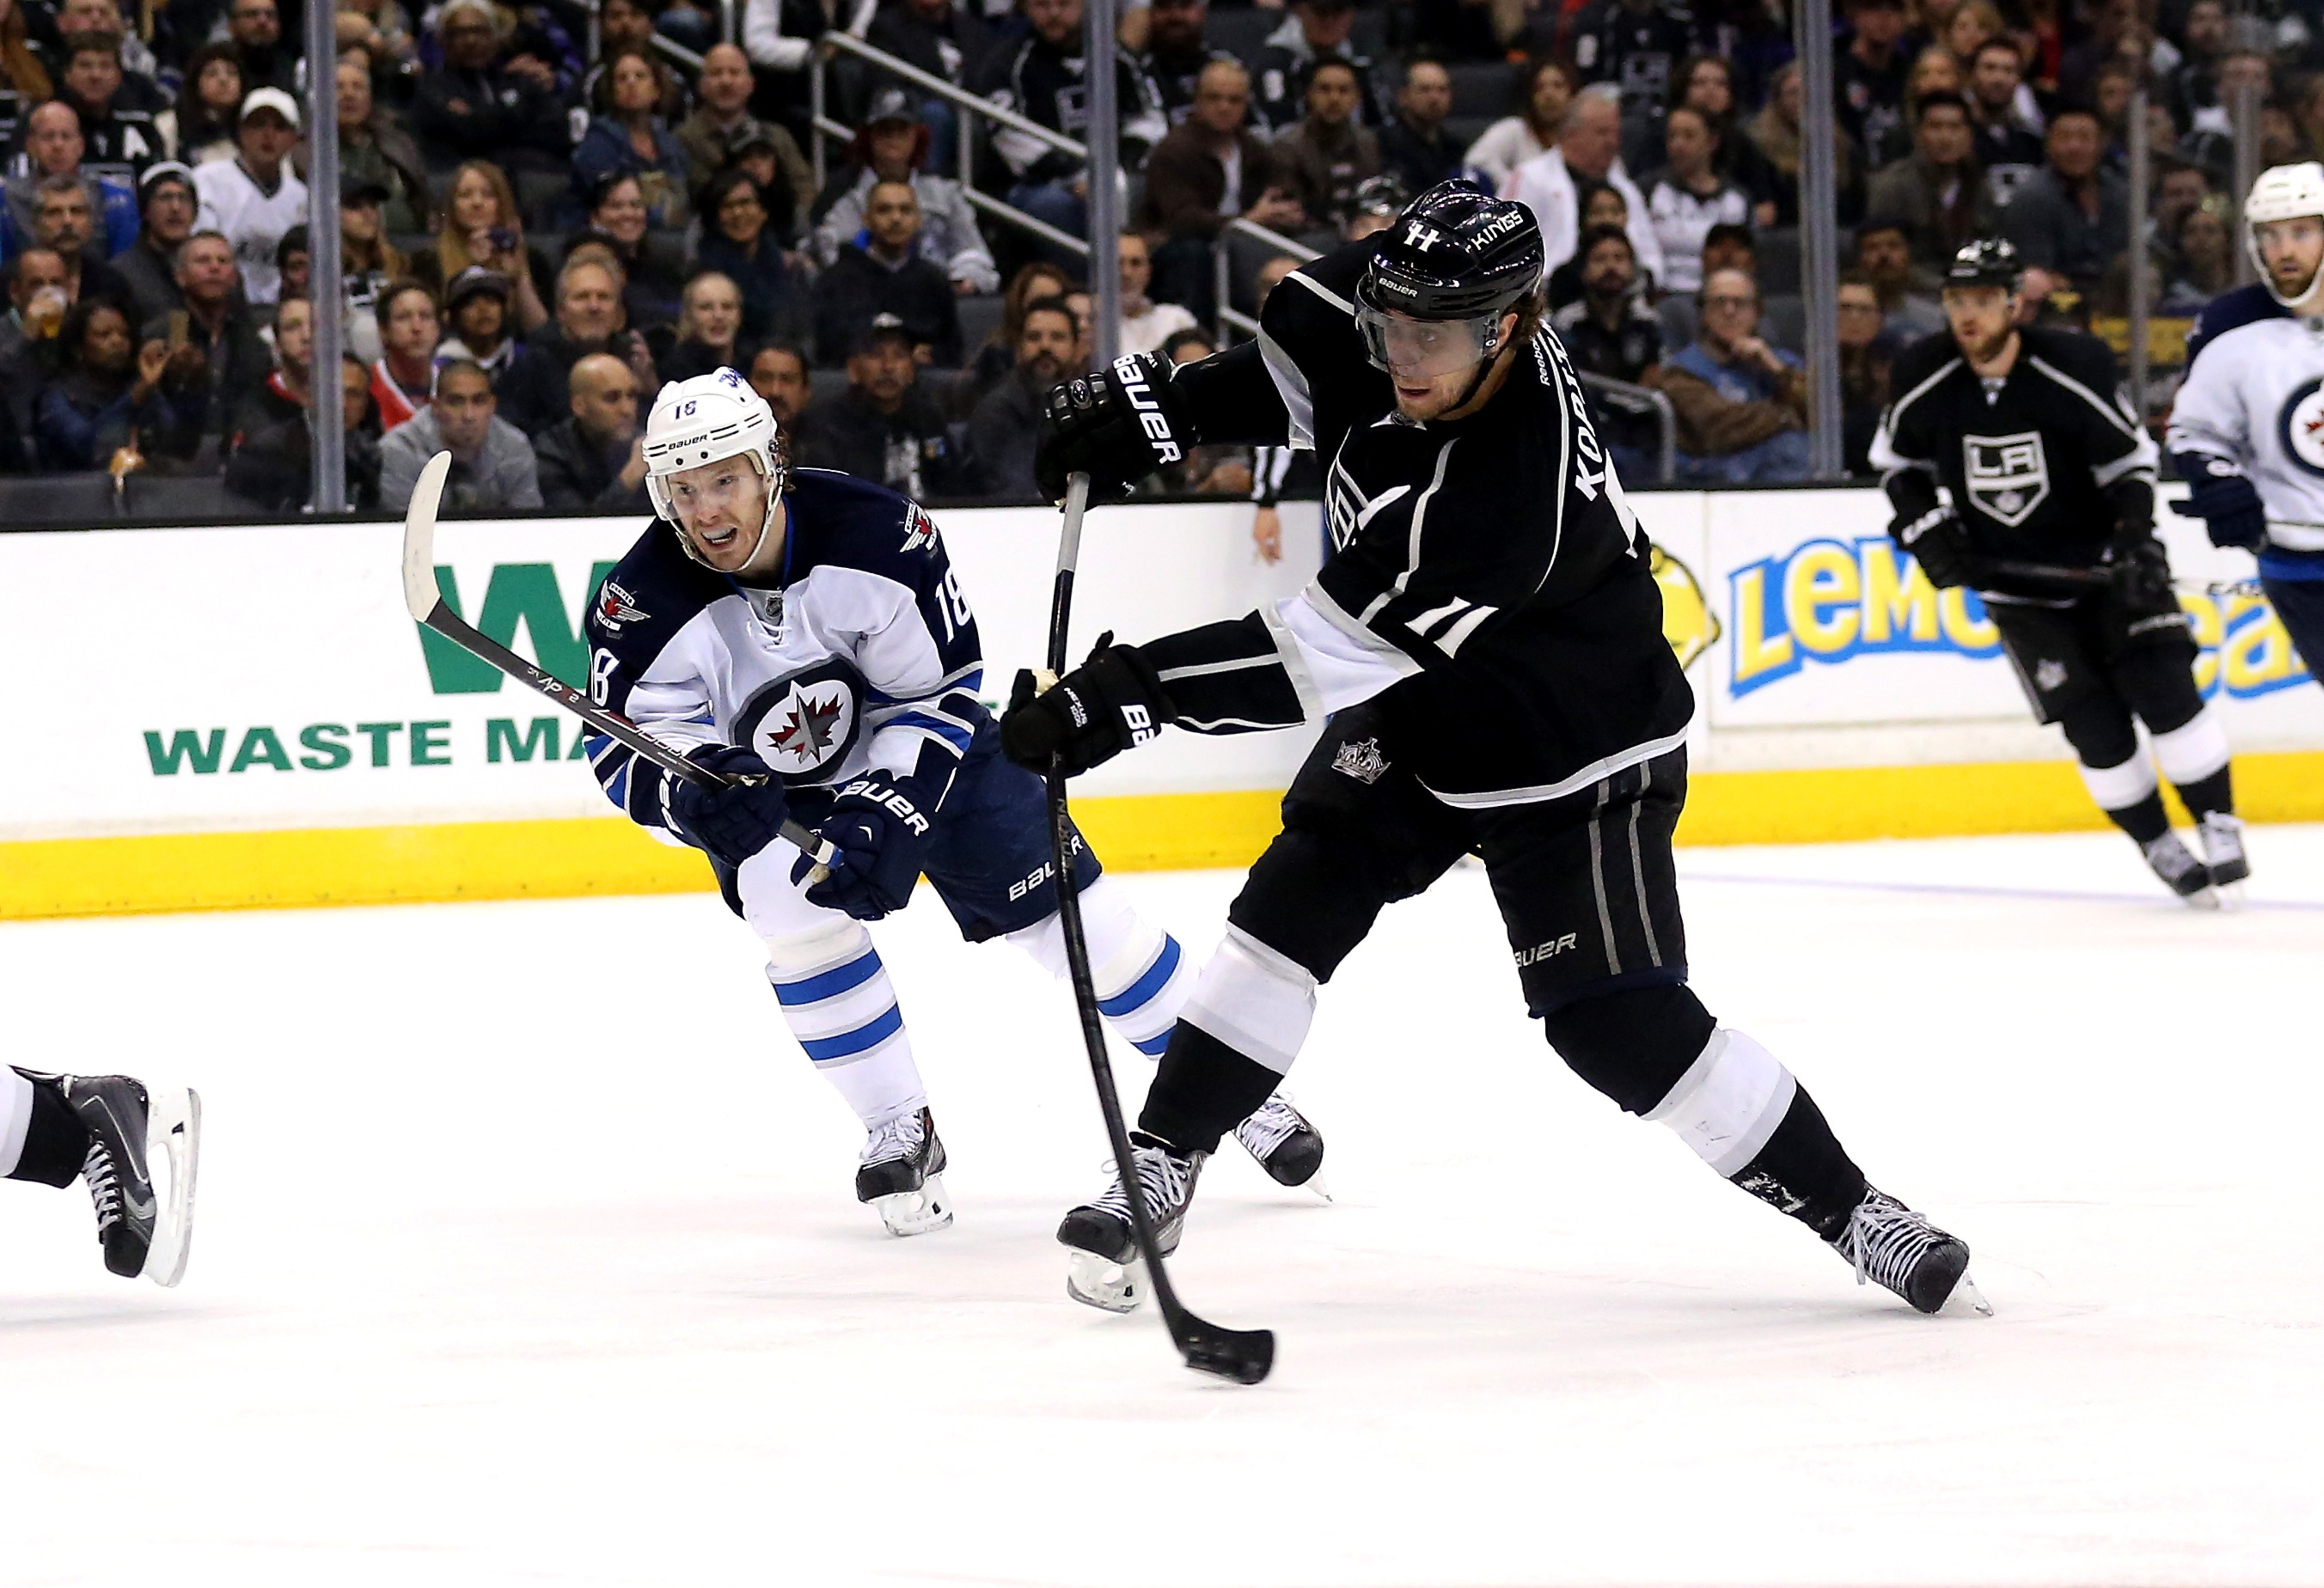 Kings #11 Anze Kopitar takes a shot while Jets #18 Bryan Little tries to defend at Staples Centre on March 29th